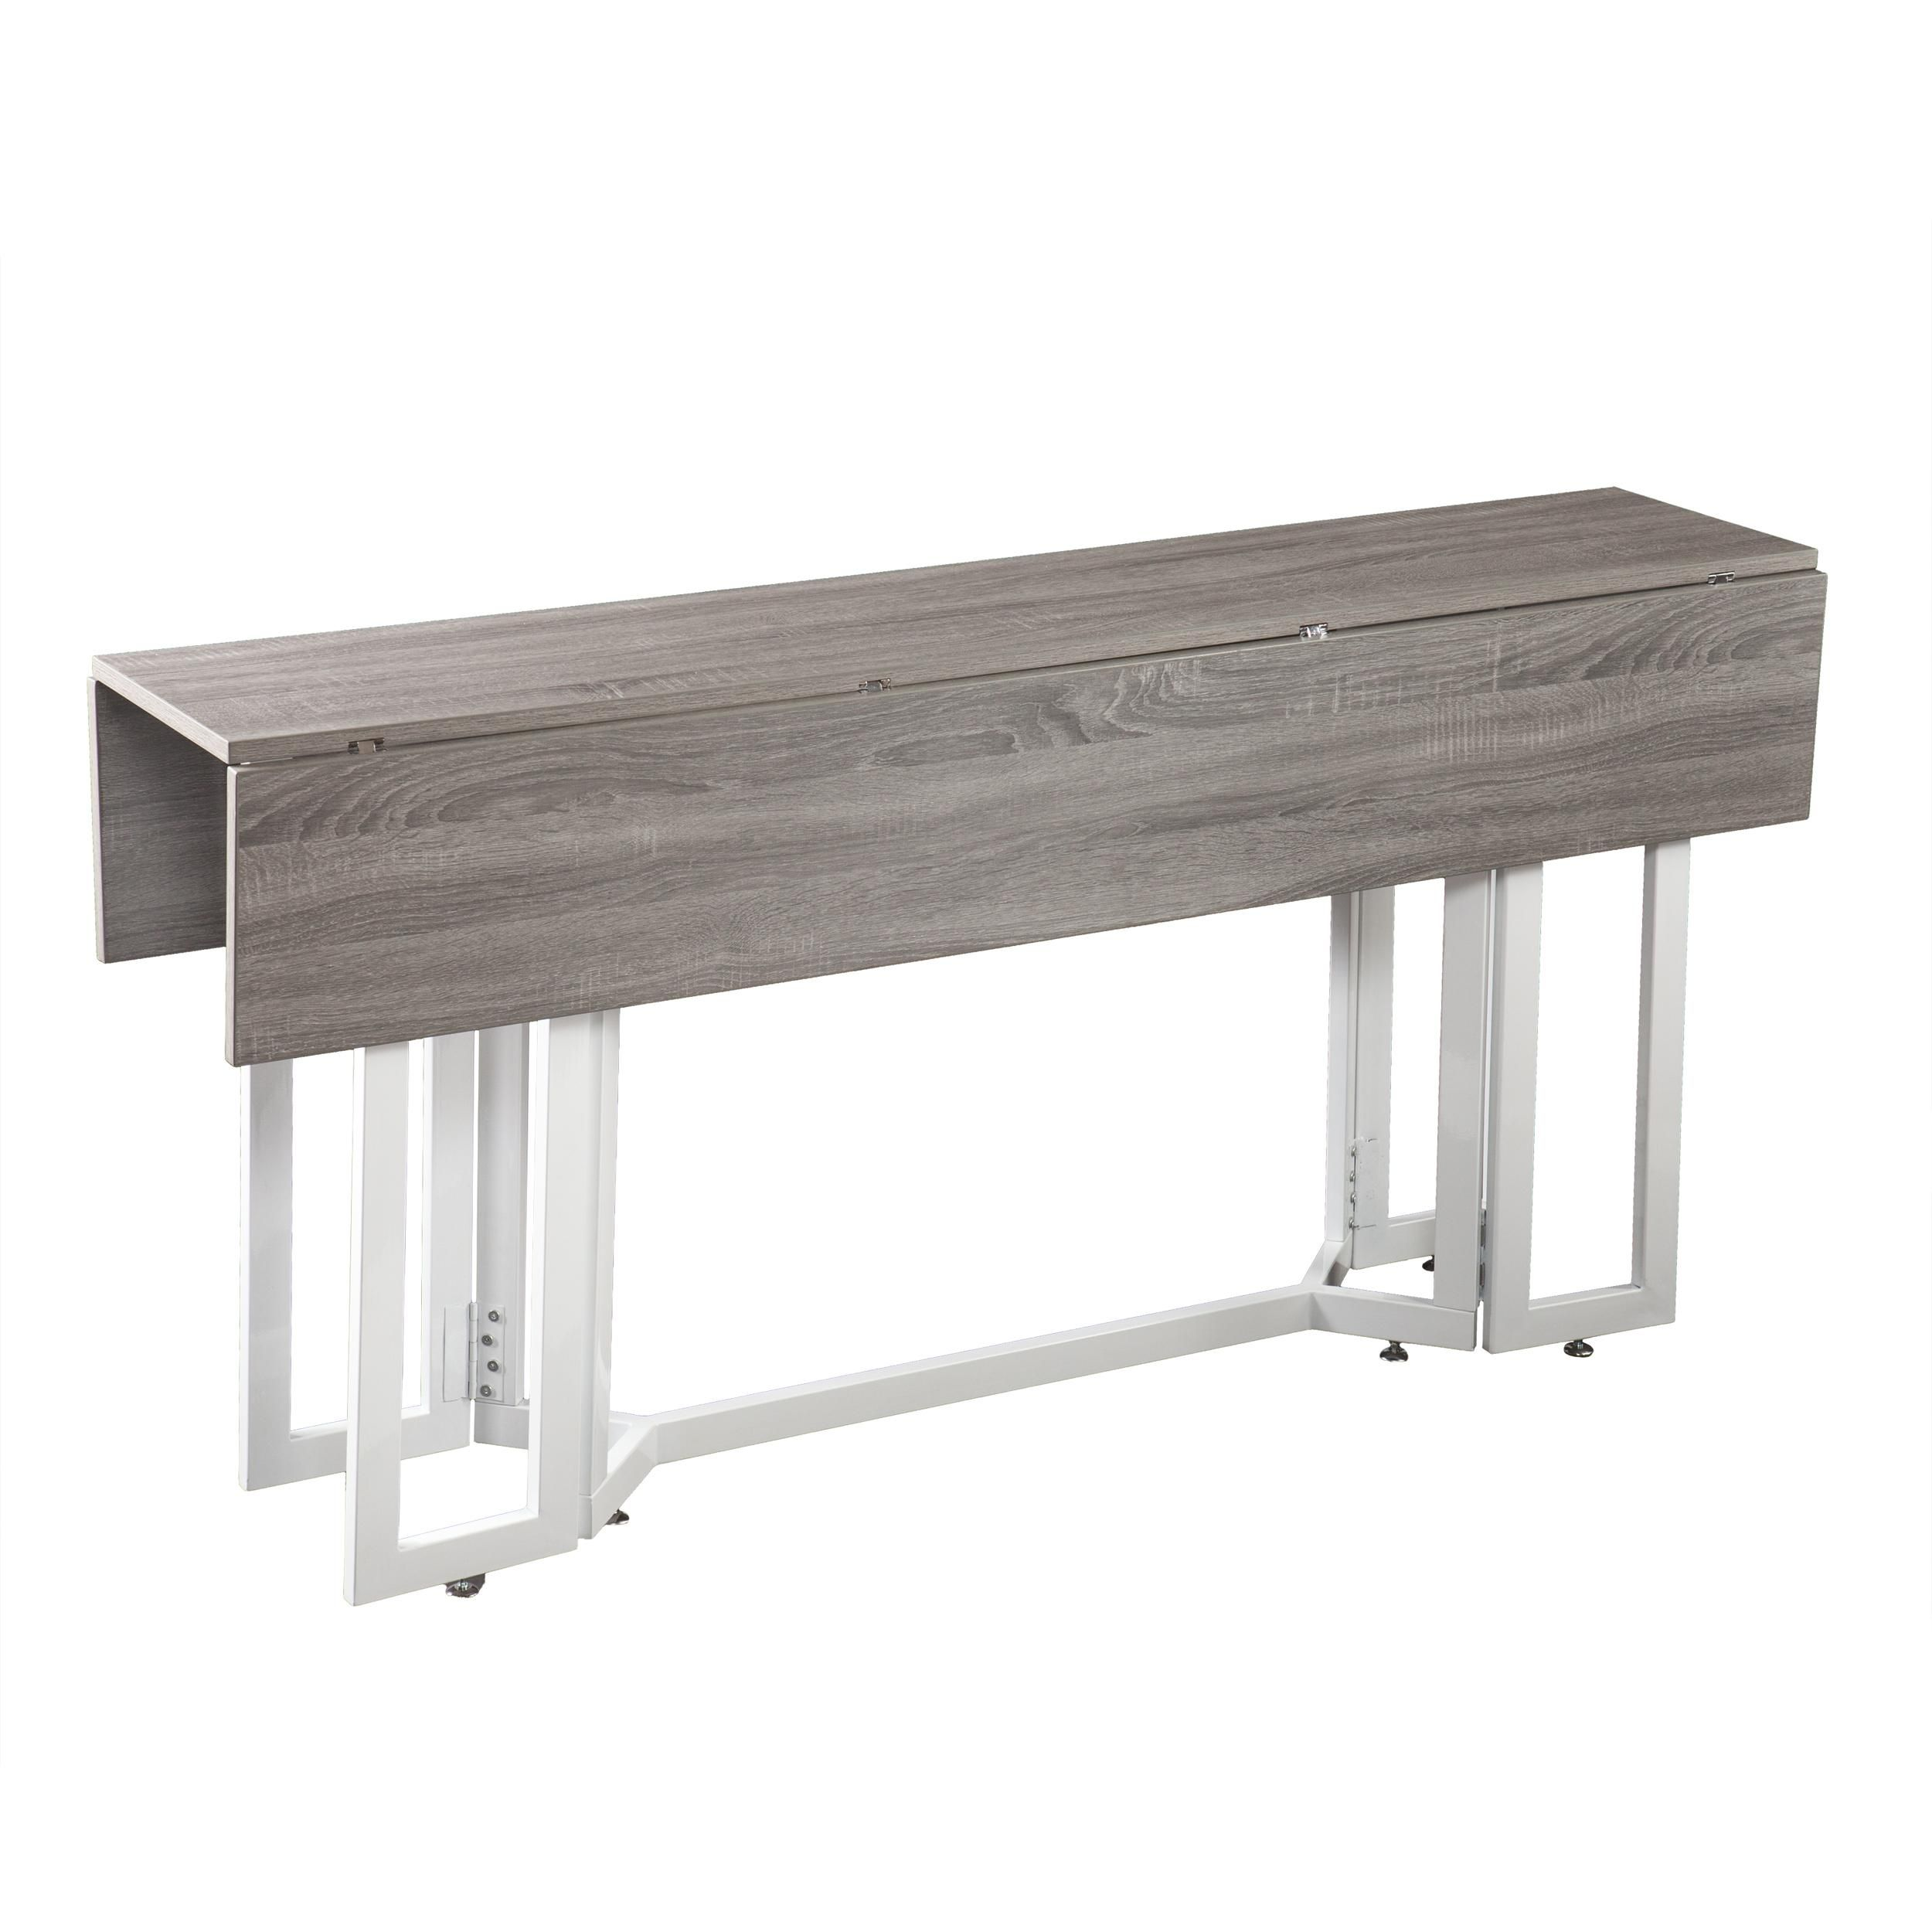 Weathered Oak w// Black Metal Base Seats 4 to 6 Driness Drop Leaf Console Dining Table